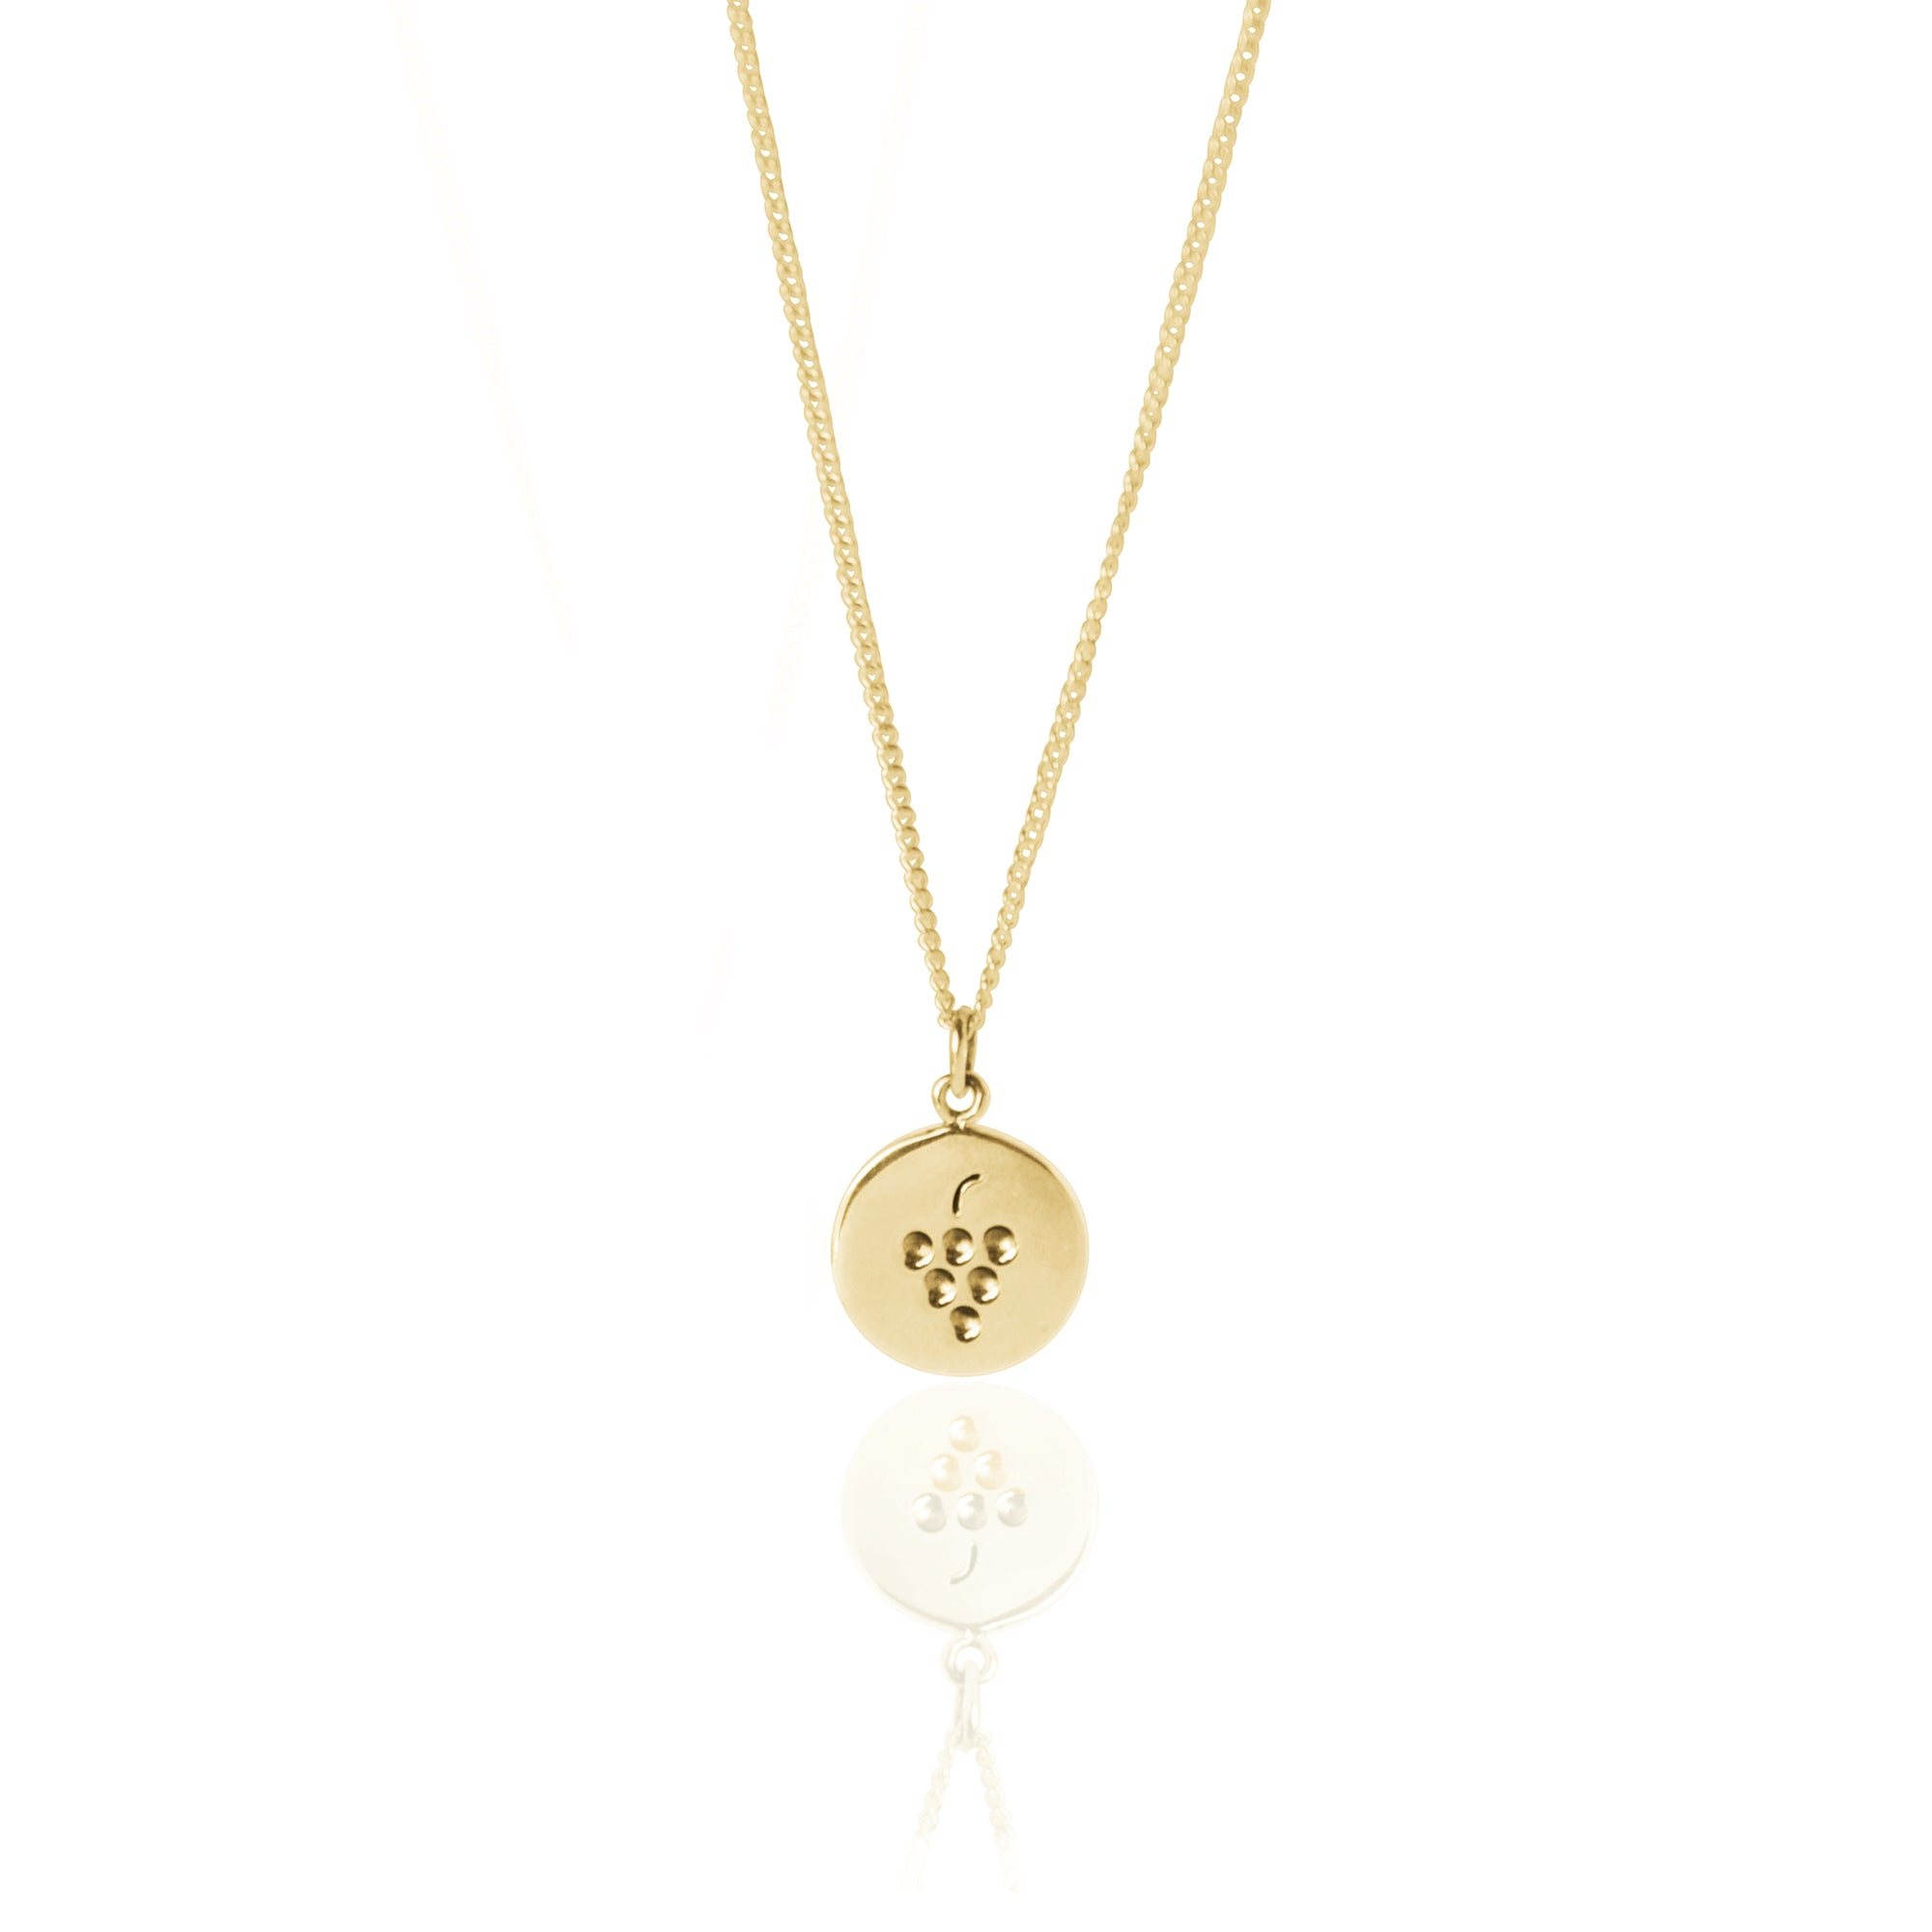 Coconut and Bliss x La Luna Rose Berry Crumble Necklace - GOLD